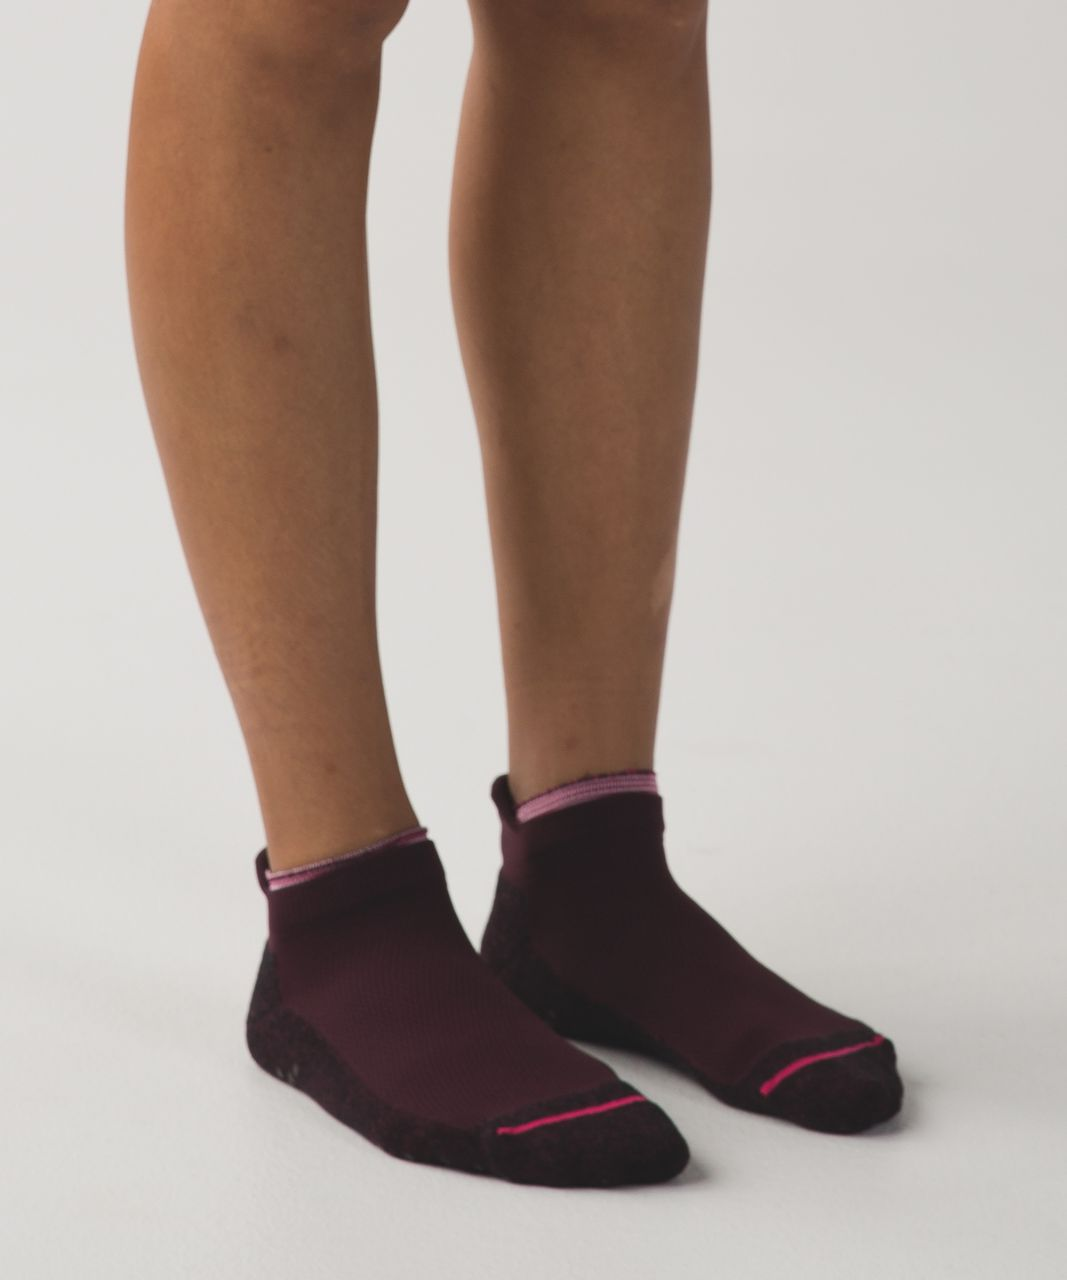 Lululemon See You At The Studio Sock - Bordeaux Drama / Bon Bon / Wine Berry